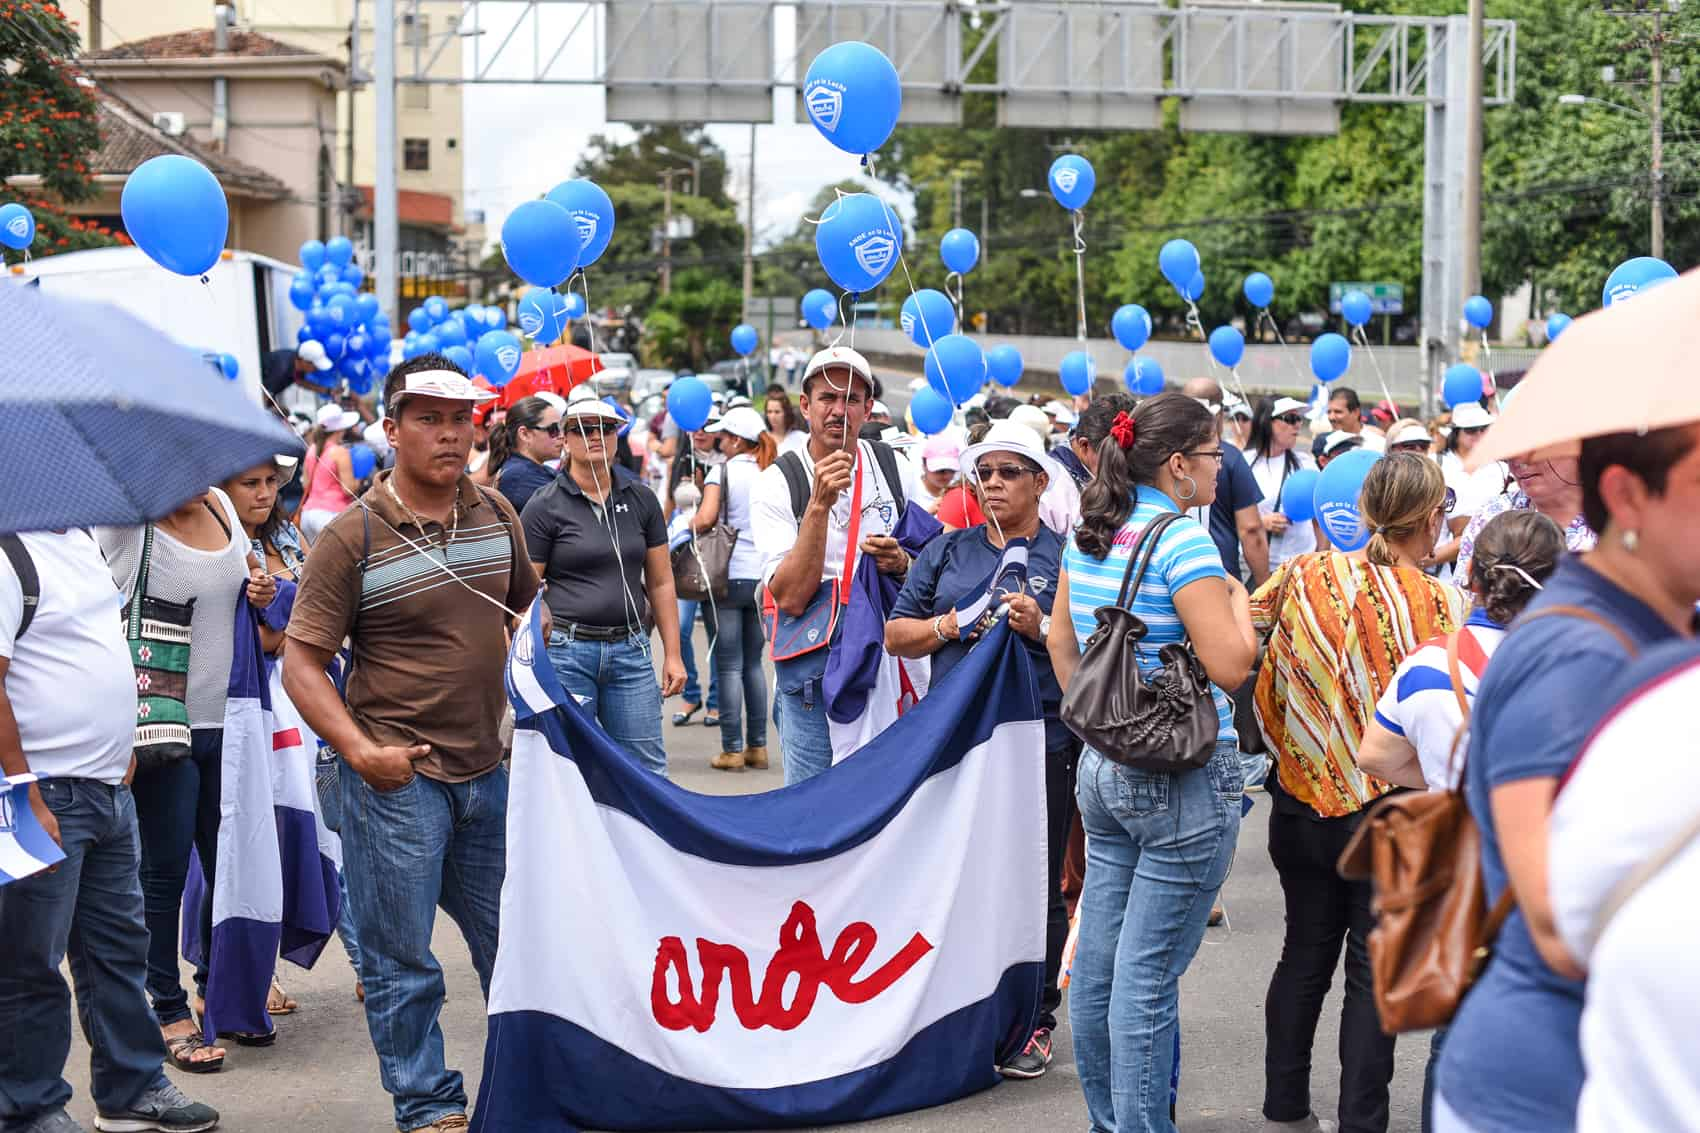 Public workers' demonstration. Oct. 16, 2015.